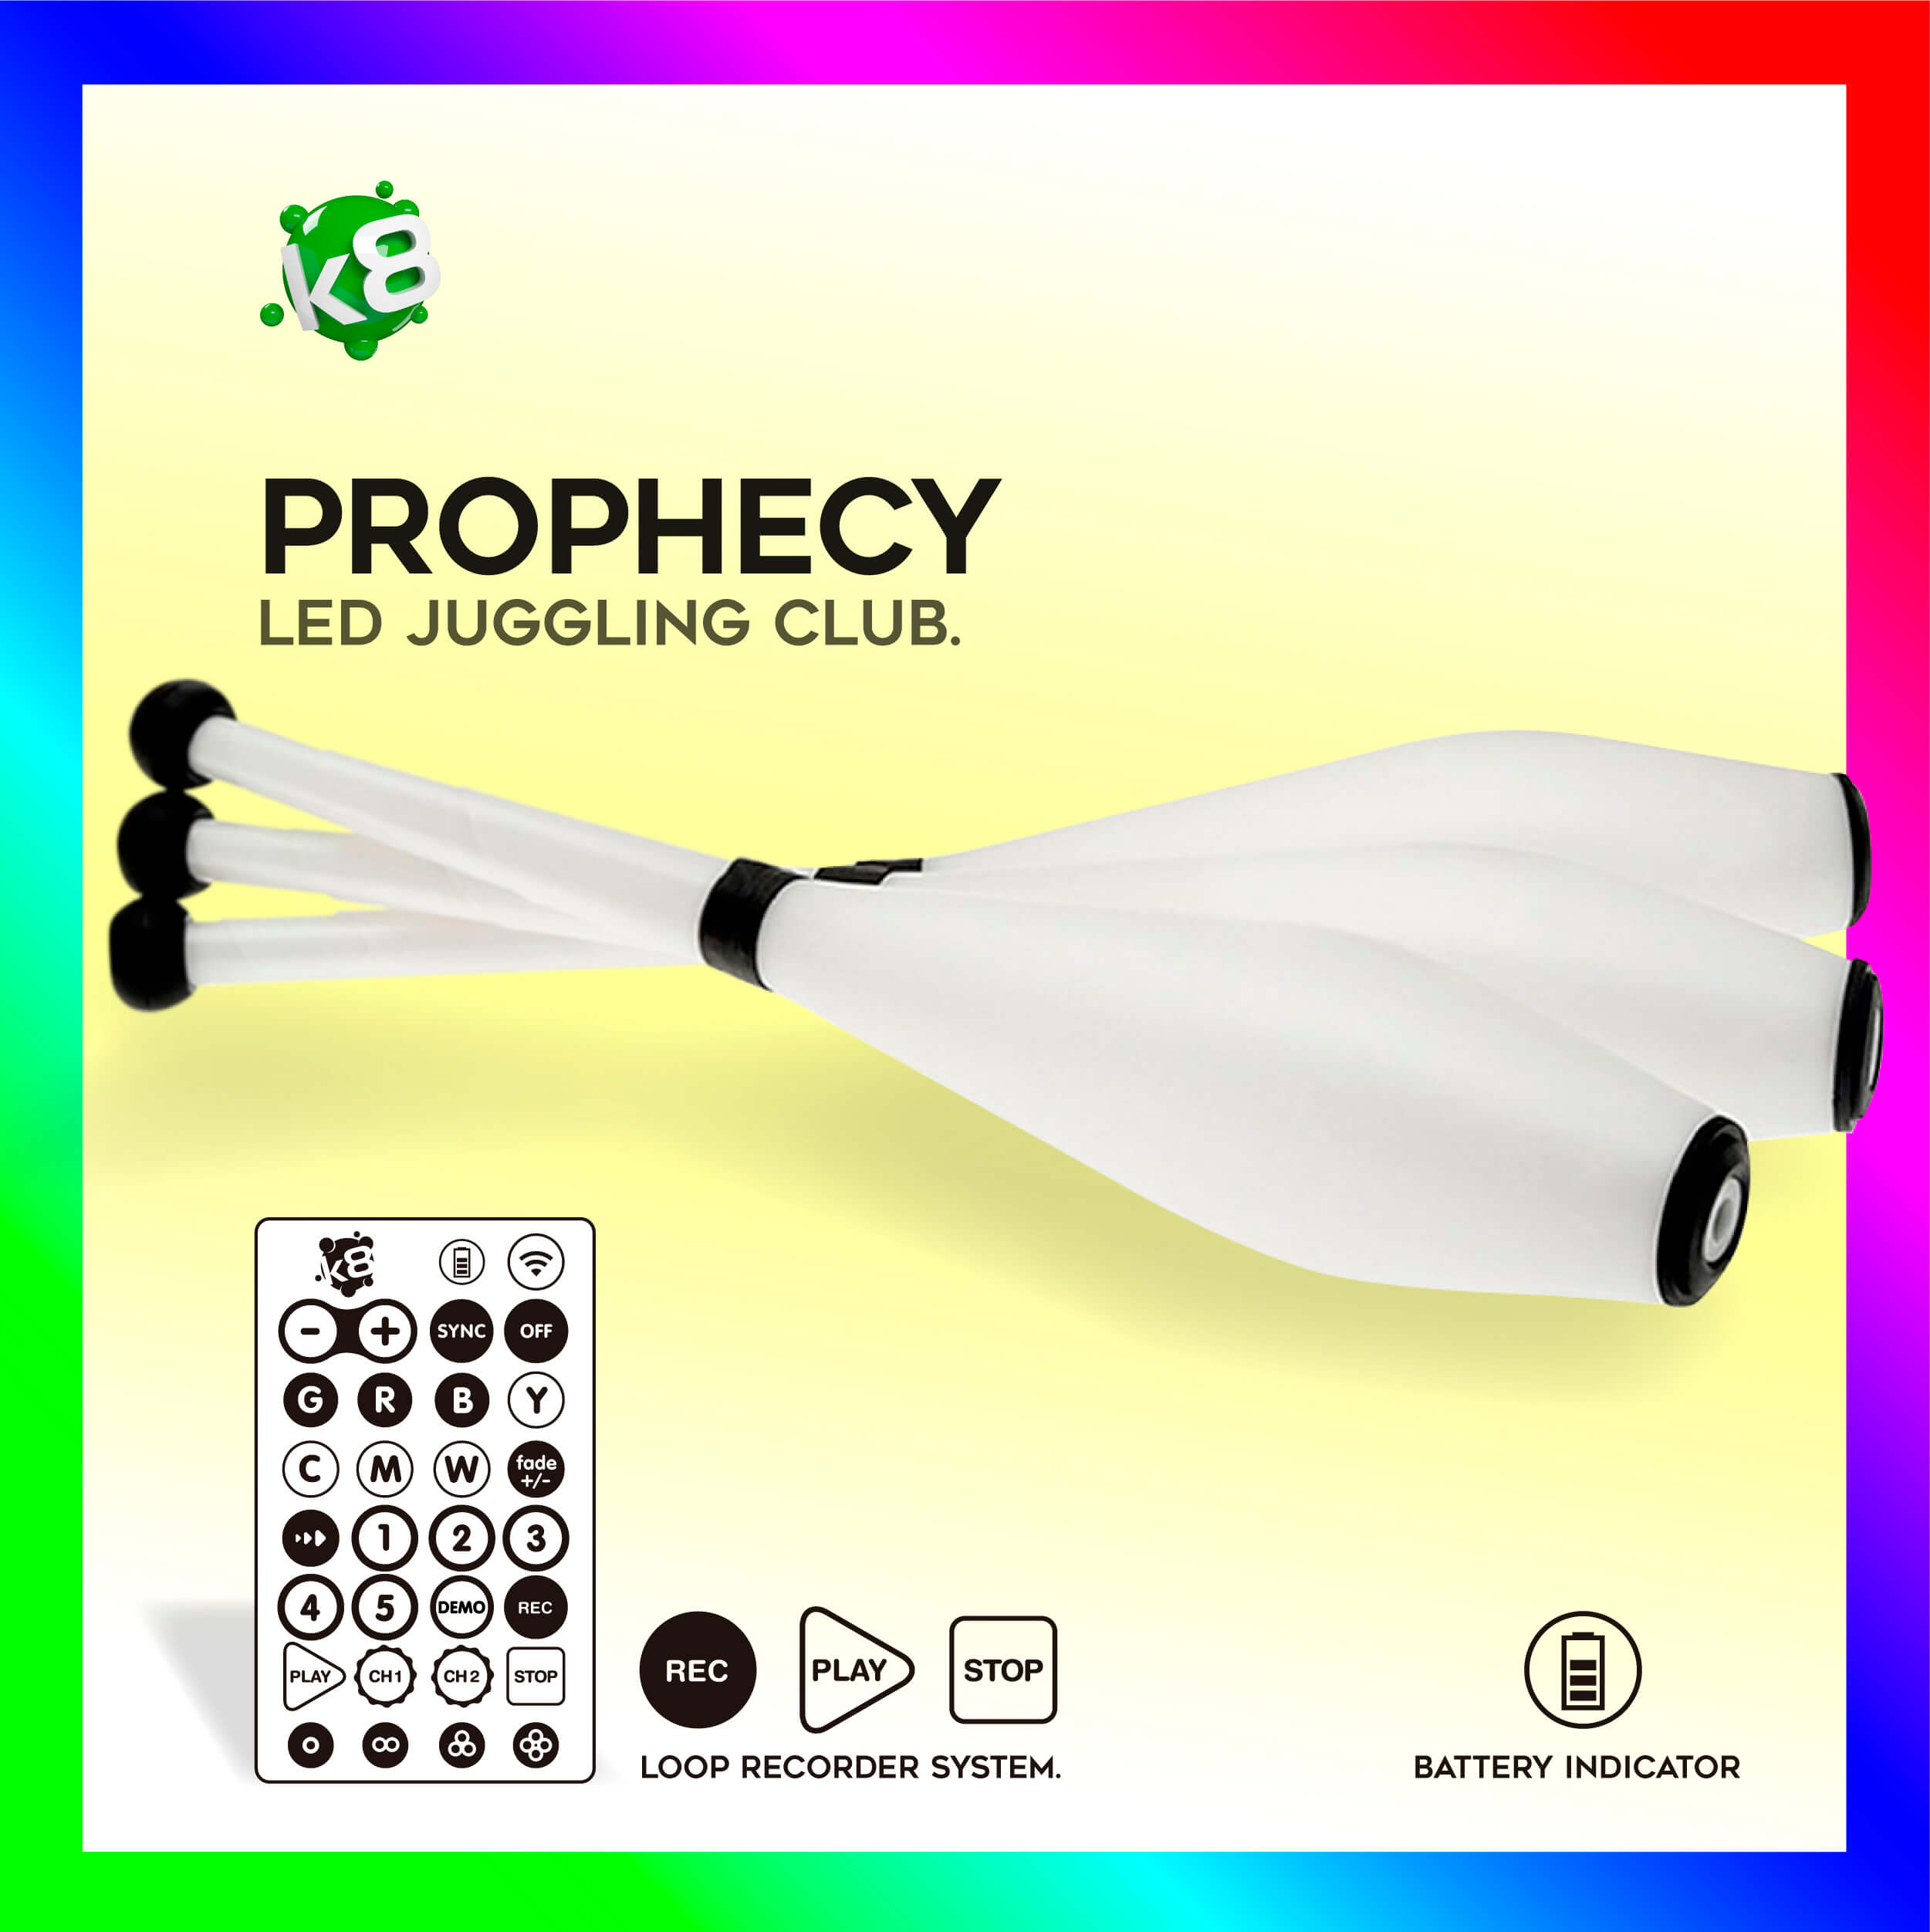 Prophecy RGB-IR LED Juggling Club